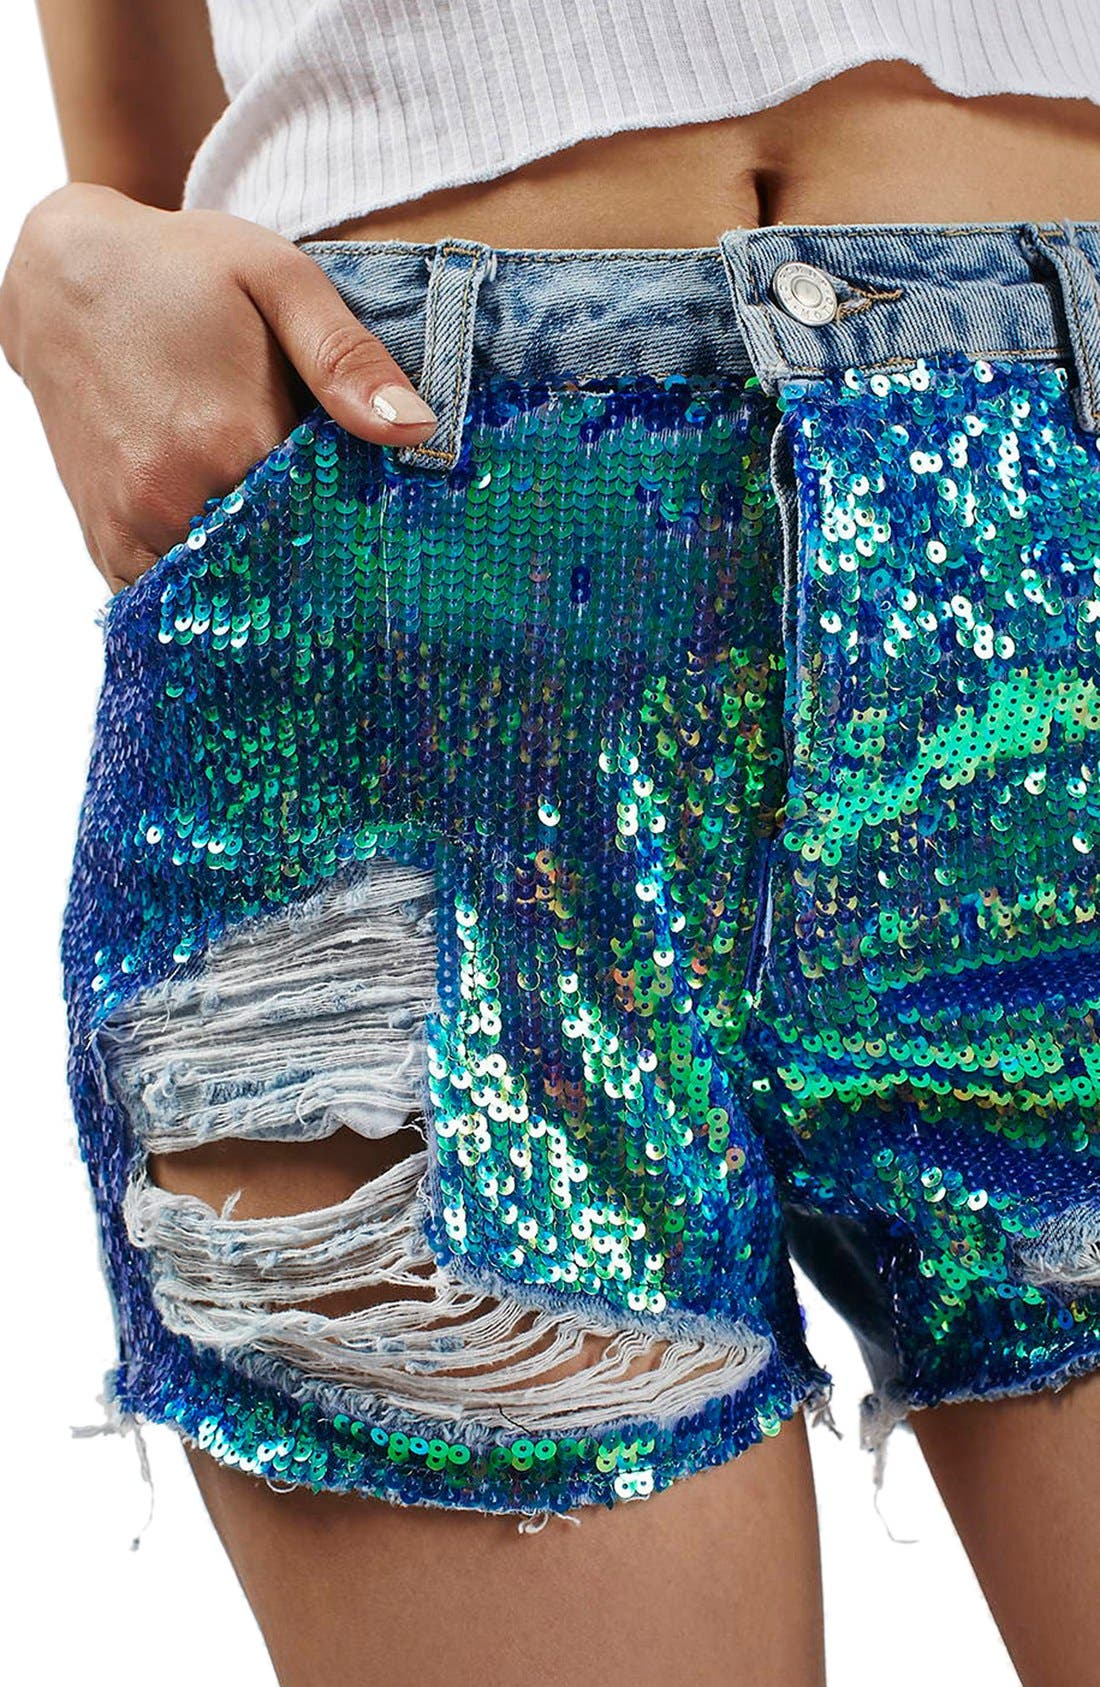 'Ashley' Sequin Cutoff Denim Shorts,                             Alternate thumbnail 4, color,                             400